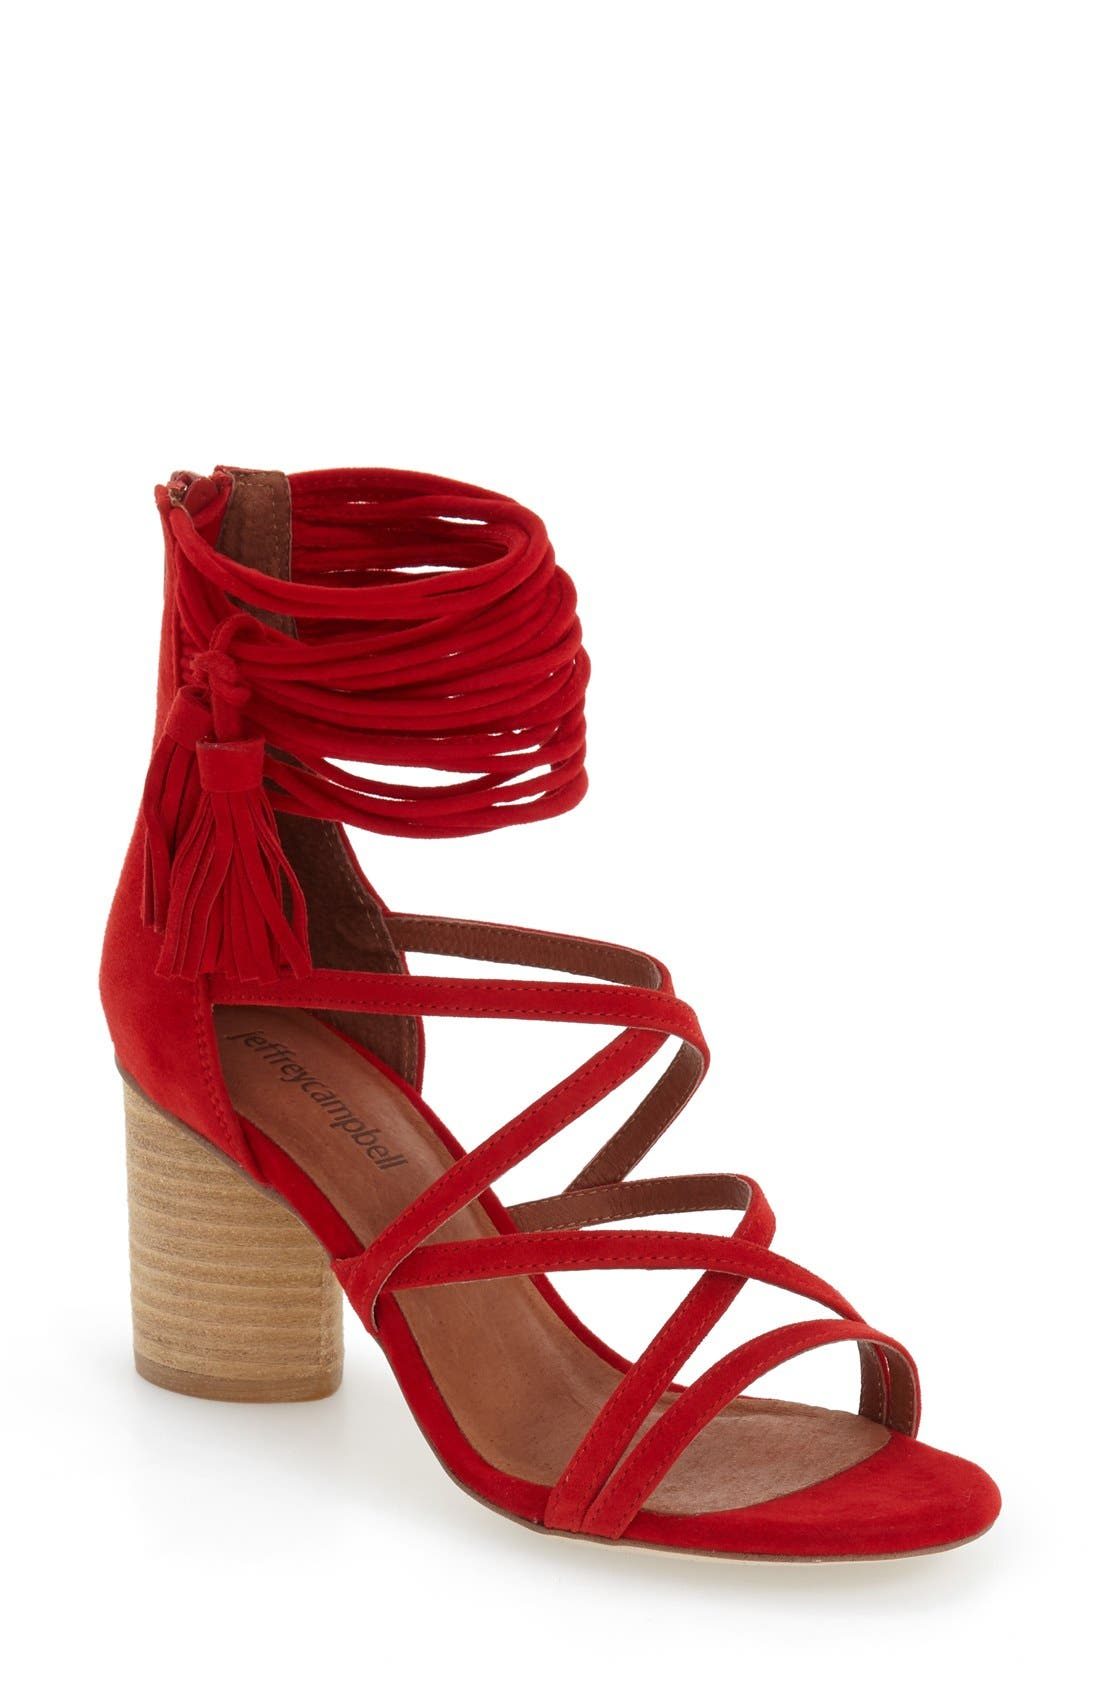 'Despina' Strappy Sandal,                             Main thumbnail 1, color,                             Red Suede